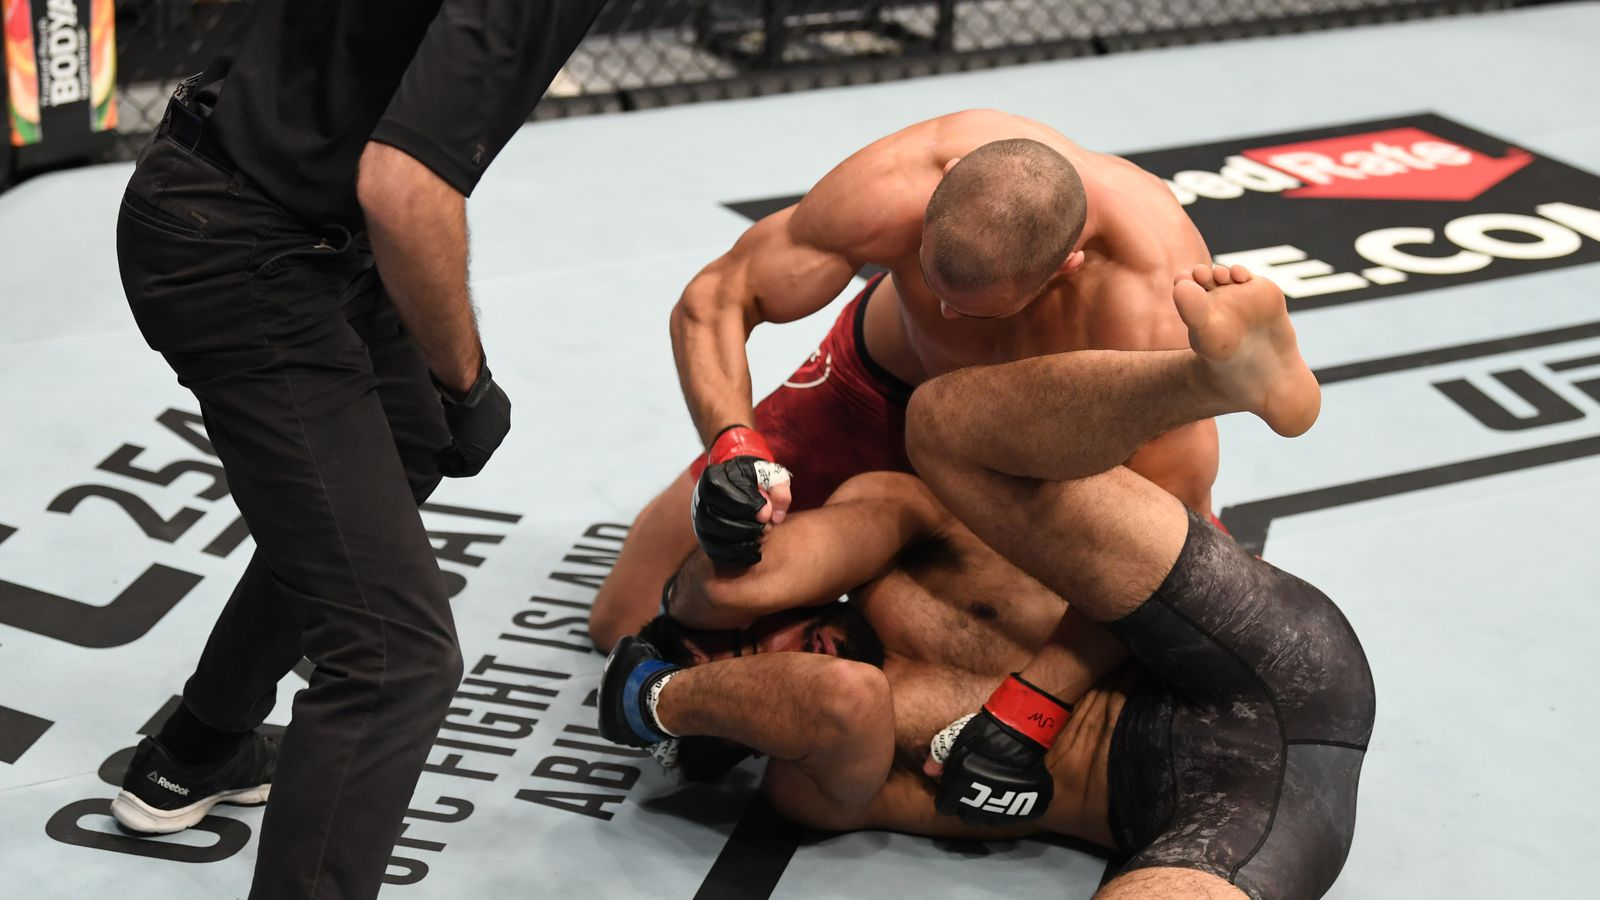 Knockout! Watch Tom Breese crumble KB Bhullar early at UFC Fight Island 5 - MMAmania.com